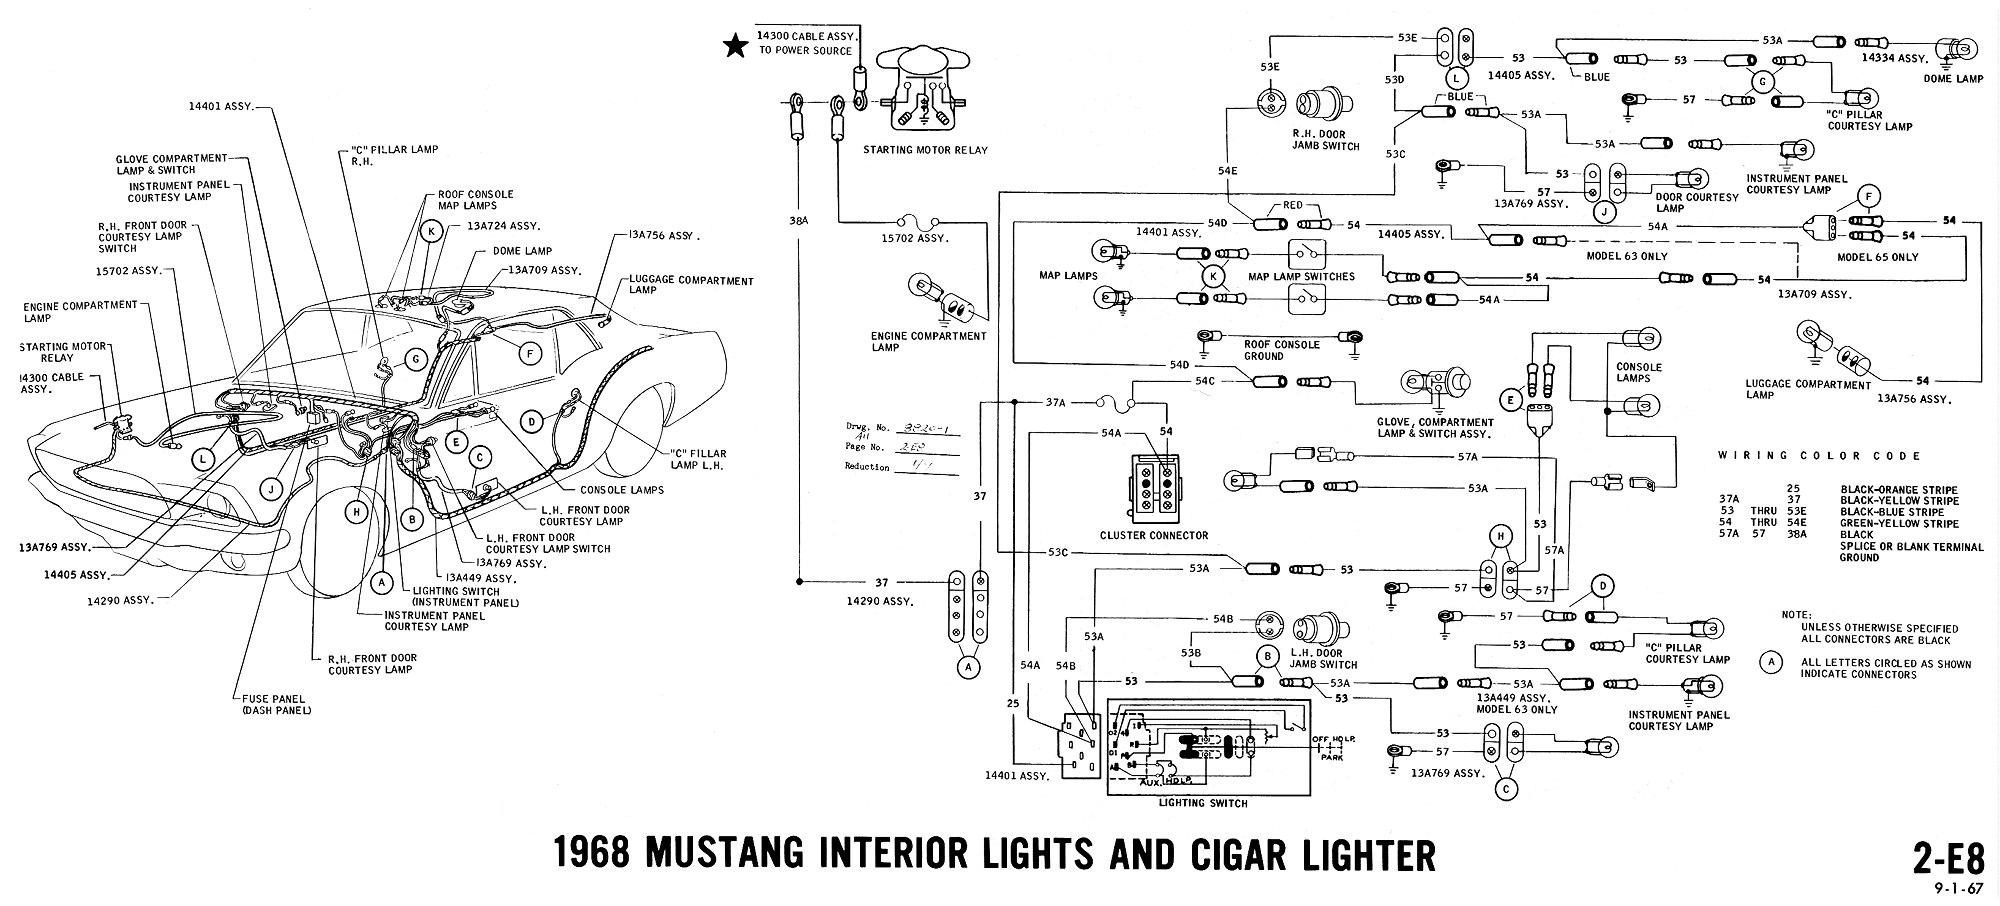 1964 Ford Falcon Alternator Wiring Diagram besides P 0900c152800ad962 moreover Schematics i also 1024794 1979 F250 Ignition Switch further 25rmd 93 Dodge Van Electric Windows A C Stoped. on windshield wiper motor wiring harness